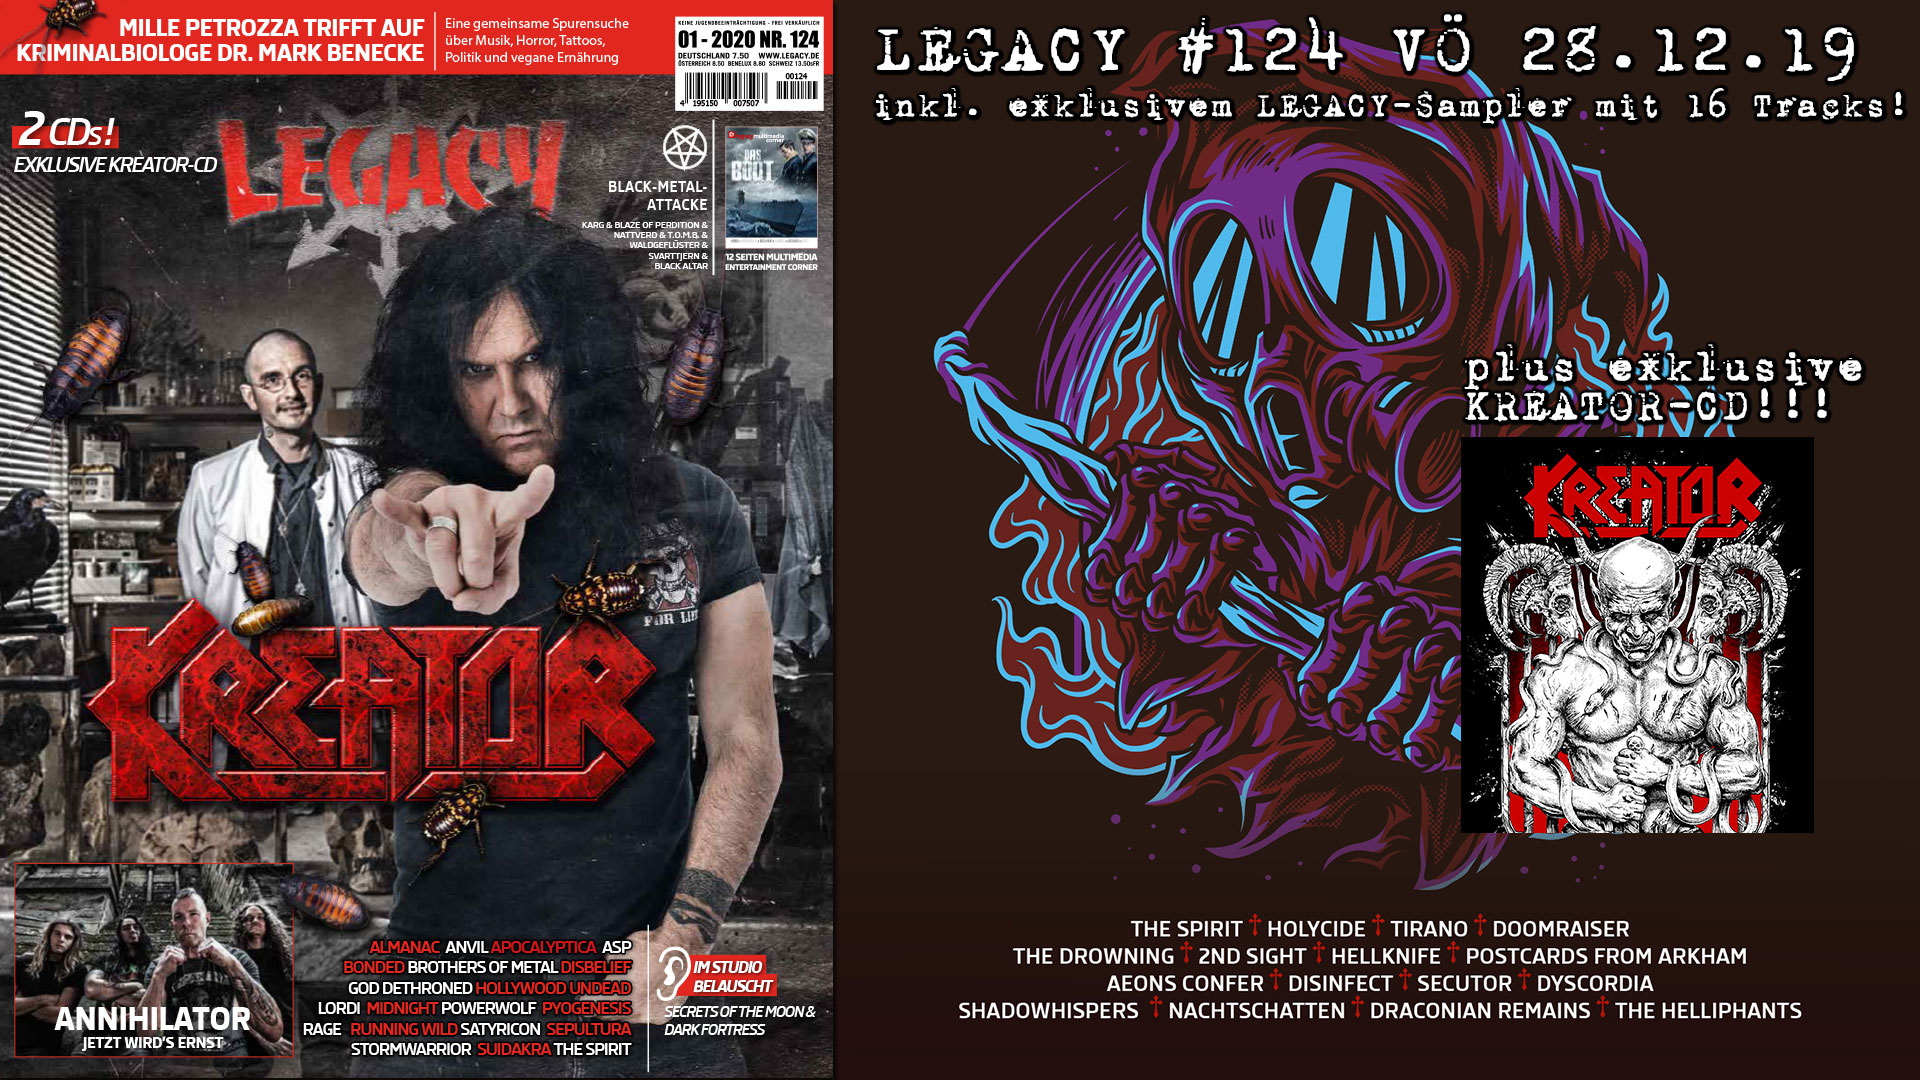 LEGACY #124 out 28.12.2019